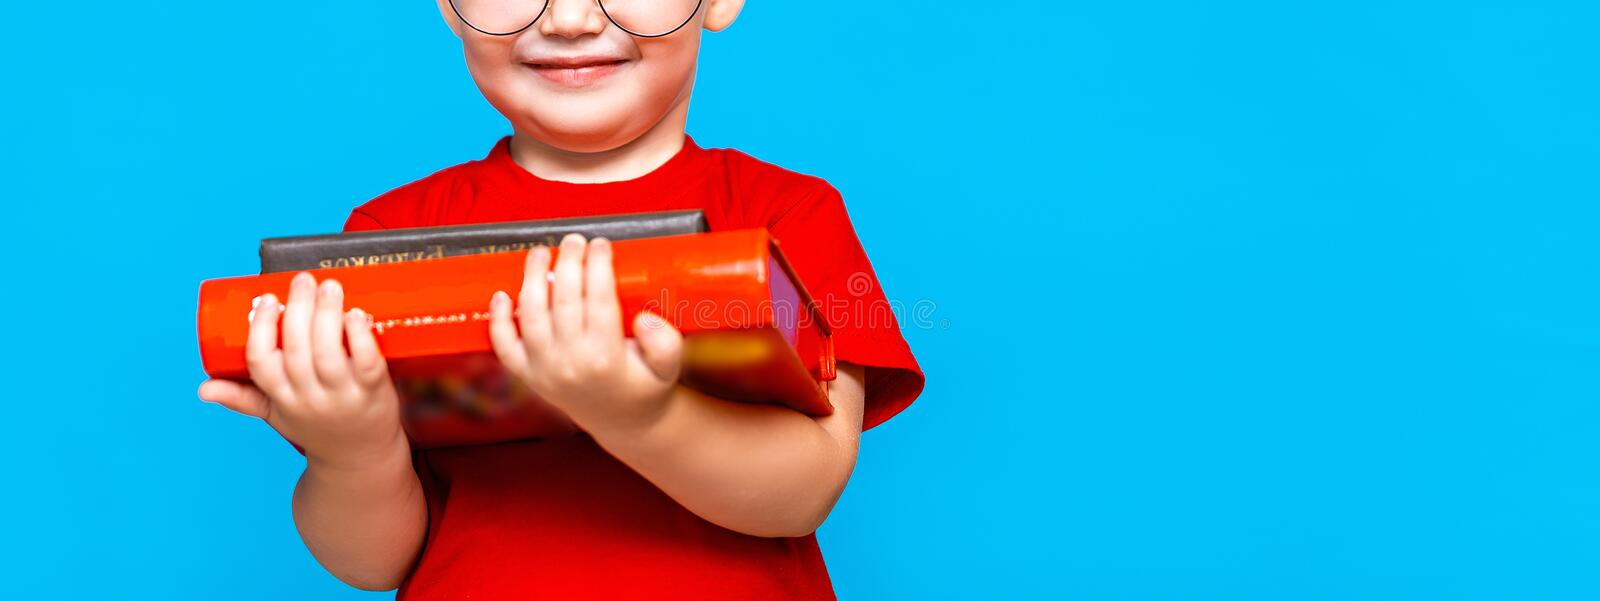 Smiling Little boy in round glasses holding a stack of books. education. ready to school.  royalty free stock photos